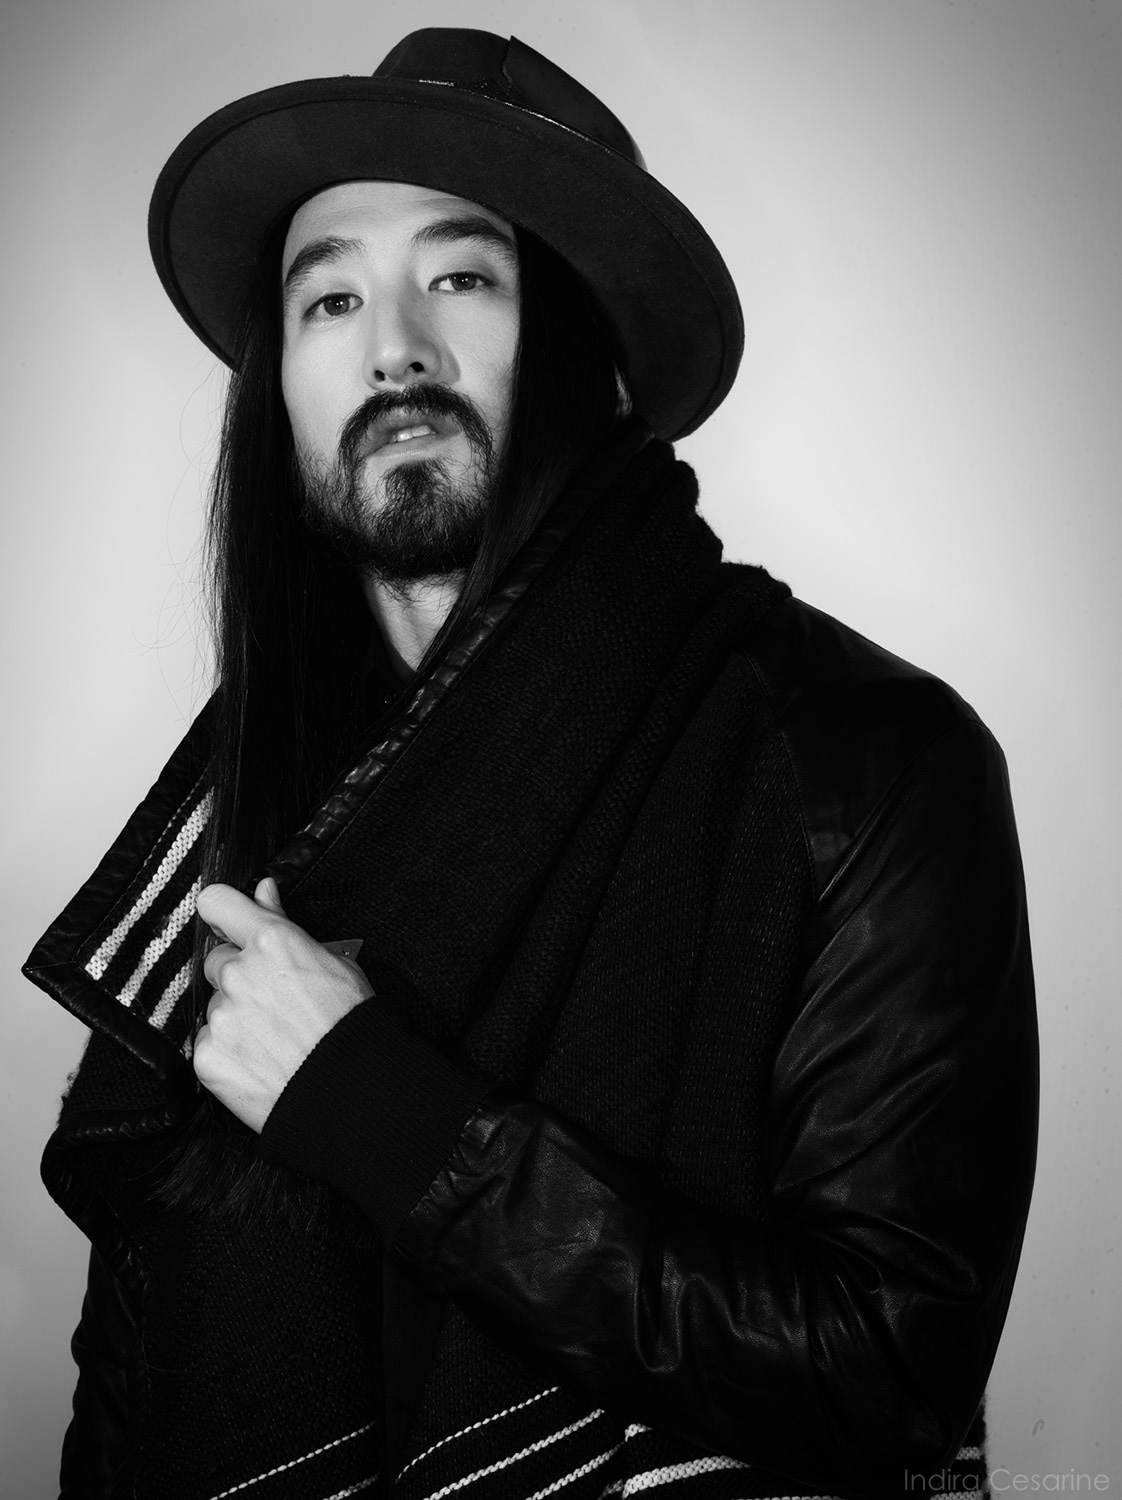 Steve-Aoki-The-Untitled-Magazine-Photography-by-Indira-Cesarine-006.jpg